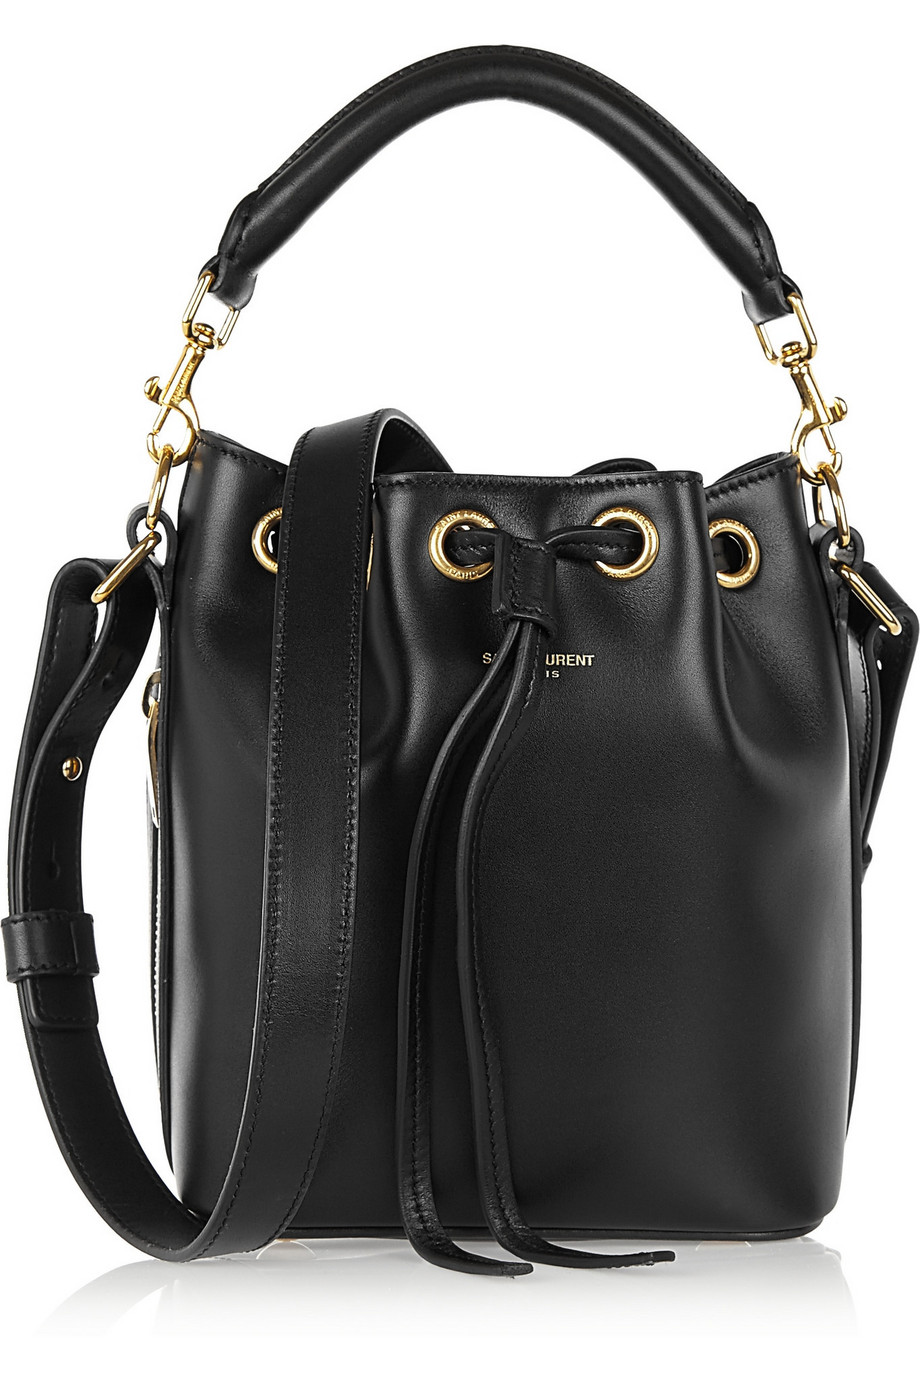 Saint Laurent Emmanuelle Small Leather Bucket Bag, Black, Women's, Size: One Size